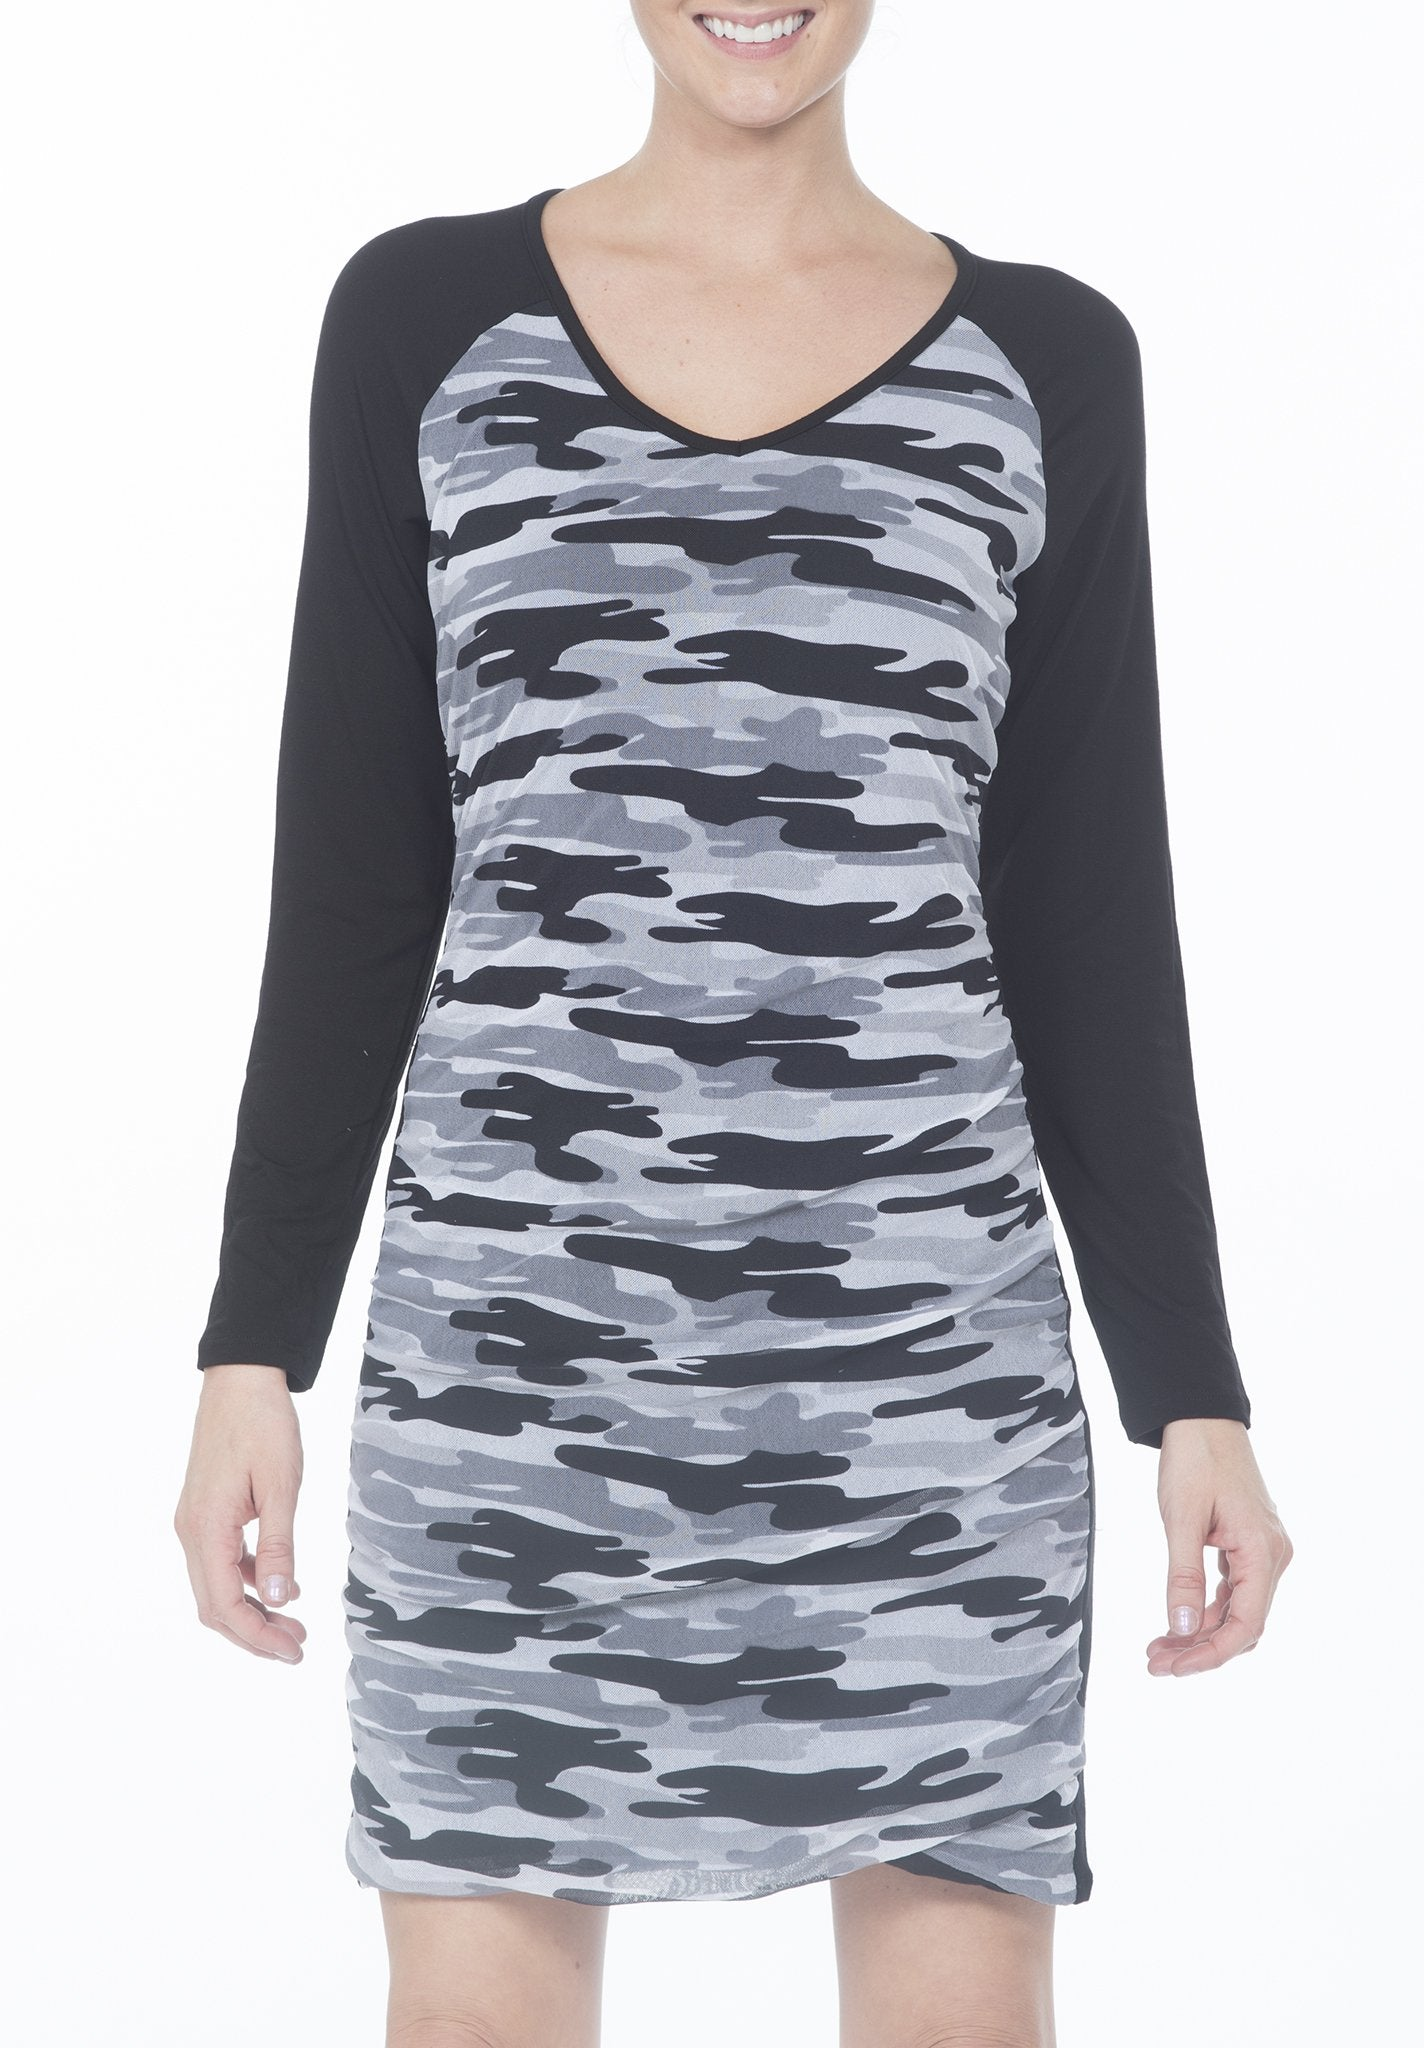 SHIRRED CAMO DRESS - PTJ TREND: Women's Designer Clothing